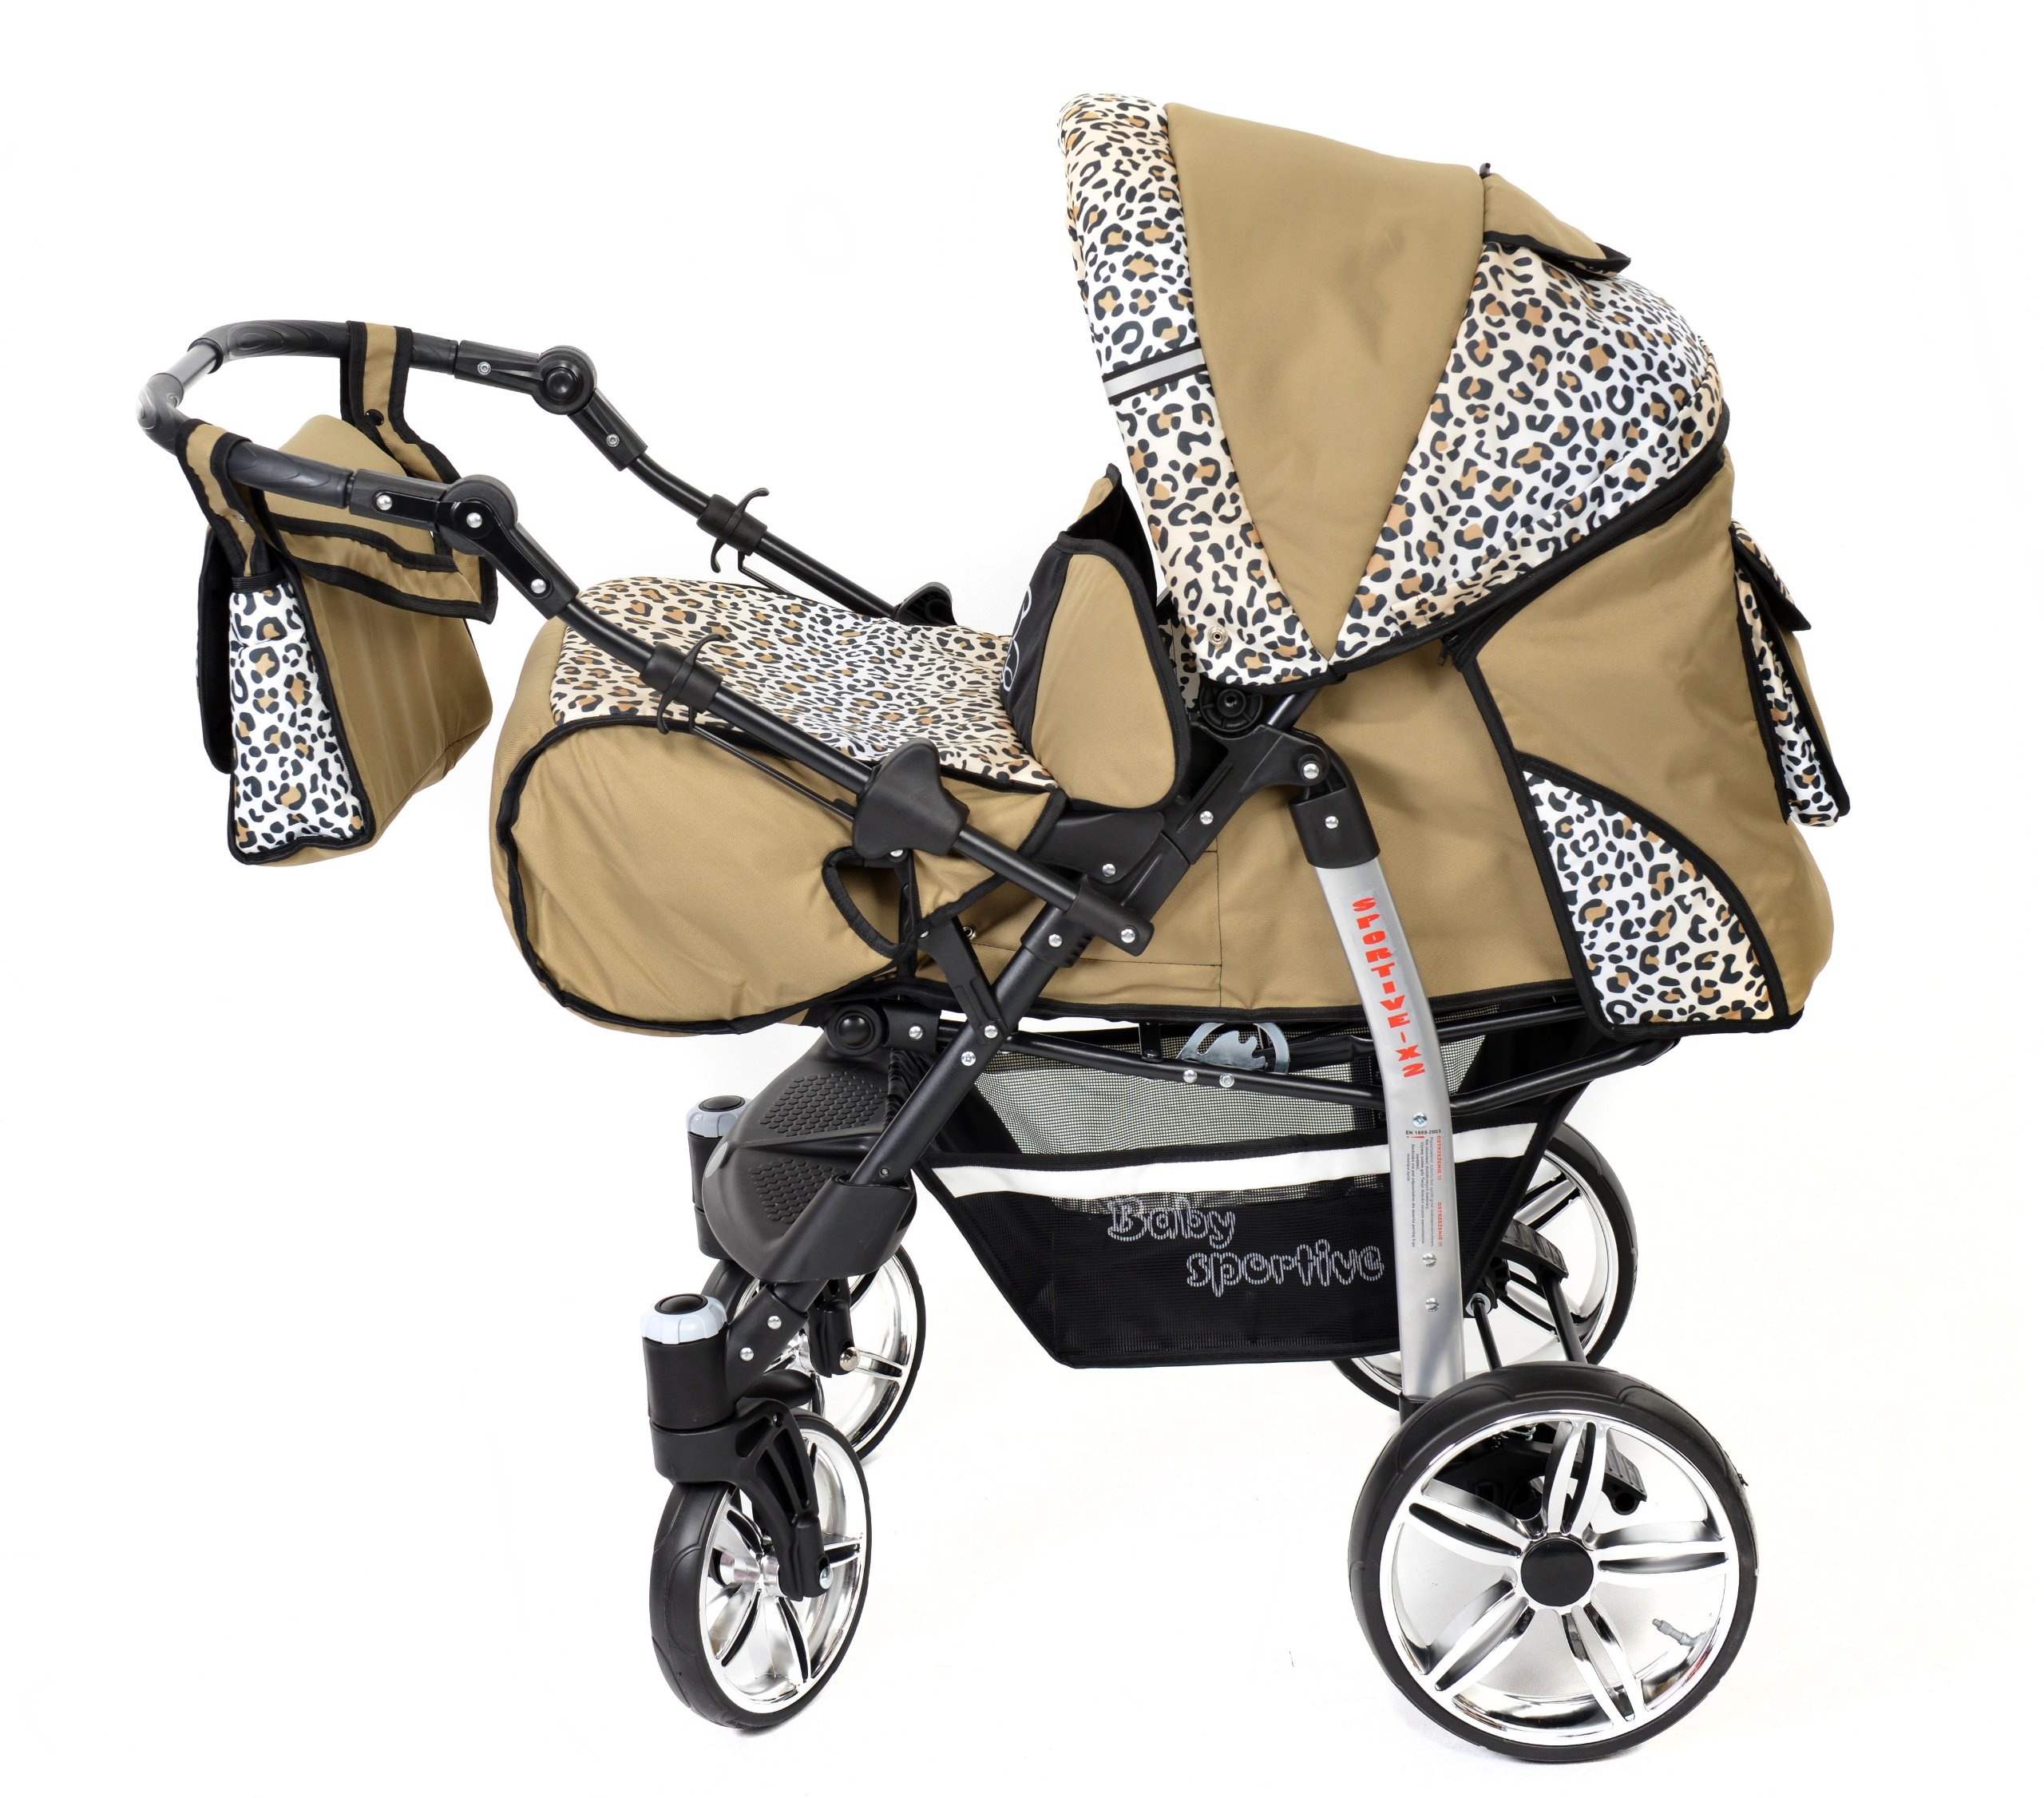 Sportive X2, 3-in-1 Travel System incl. Baby Pram with Swivel Wheels, Car Seat, Pushchair & Accessories (3-in-1 Travel System, Beige & Leopard) Baby Sportive 3 in 1 Travel System All in One Set - Pram, Car Carrier Seat and Sport Buggy + Accessories: carrier bag, rain protection, mosquito net, changing mat, removable bottle holder and removable tray for your child's bits and pieces Suitable from birth, Easy Quick Folding System; Large storage basket; Turnable handle bar that allows to face or rear the drive direction; Quick release rear wheels for easy cleaning after muddy walks Front lockable 360o swivel wheels for manoeuvrability , Small sized when folded, fits into many small car trunks, Carry-cot with a removable hood, Reflective elements for better visibility 2